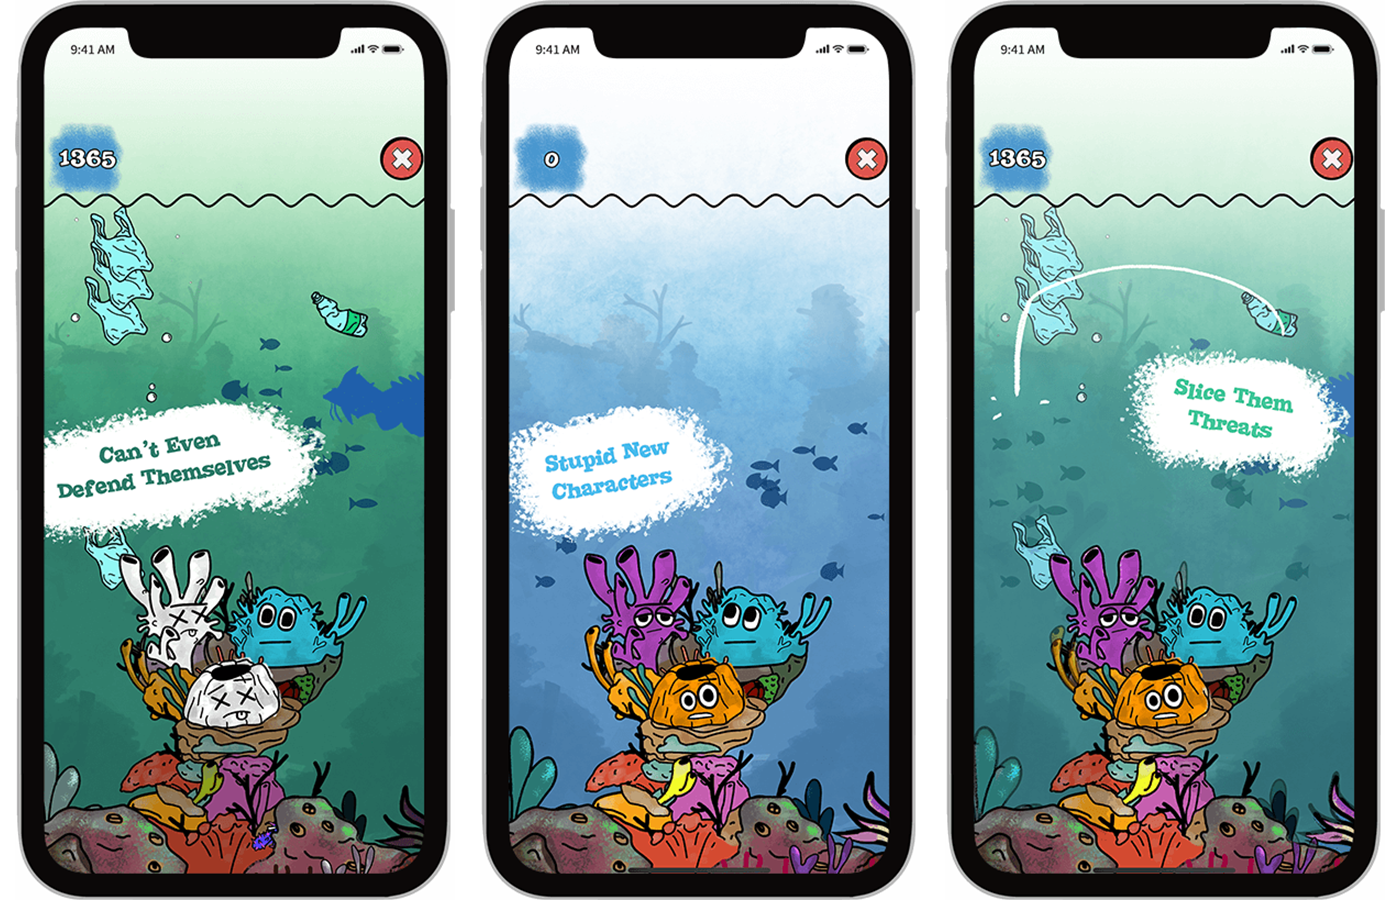 Bleached Az game play on iOS, screenshots of the hopeless corals Tony, Pete and Oscar. Mobile Arcade Game developed by Chaos Theory